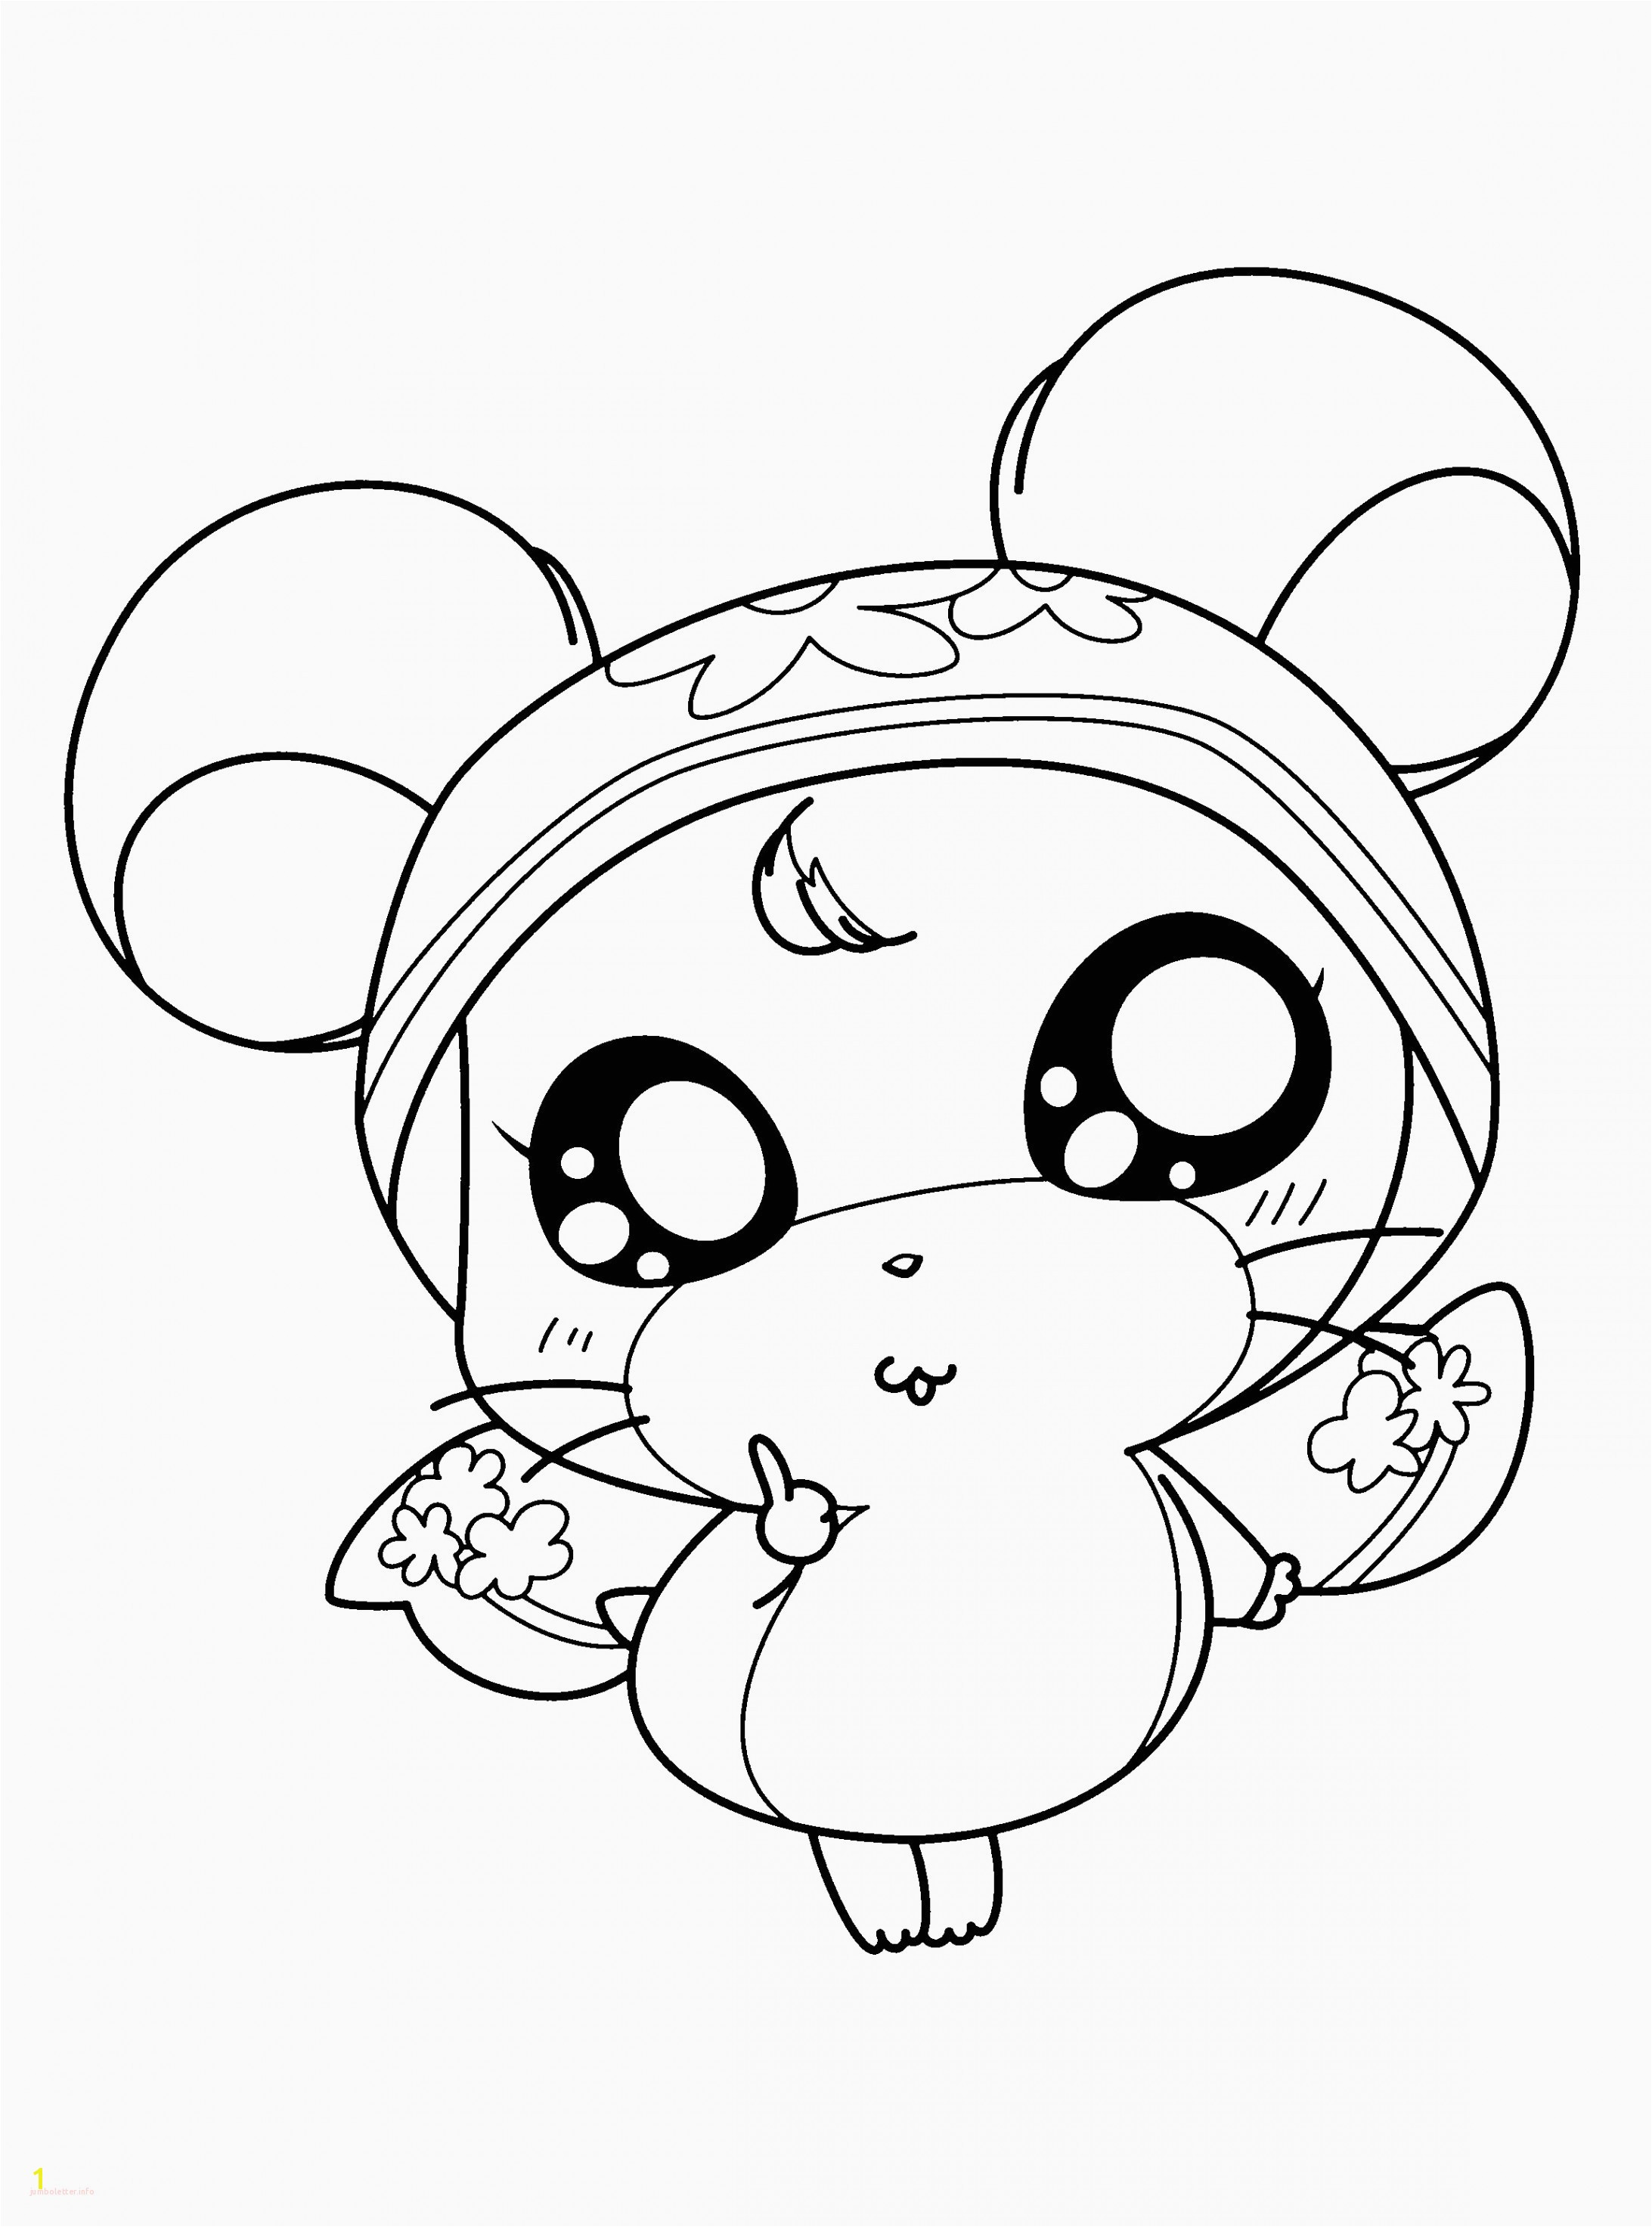 Coloring Pages For Kids Disney Disney Princess Characters Coloring Pages Printable line Free